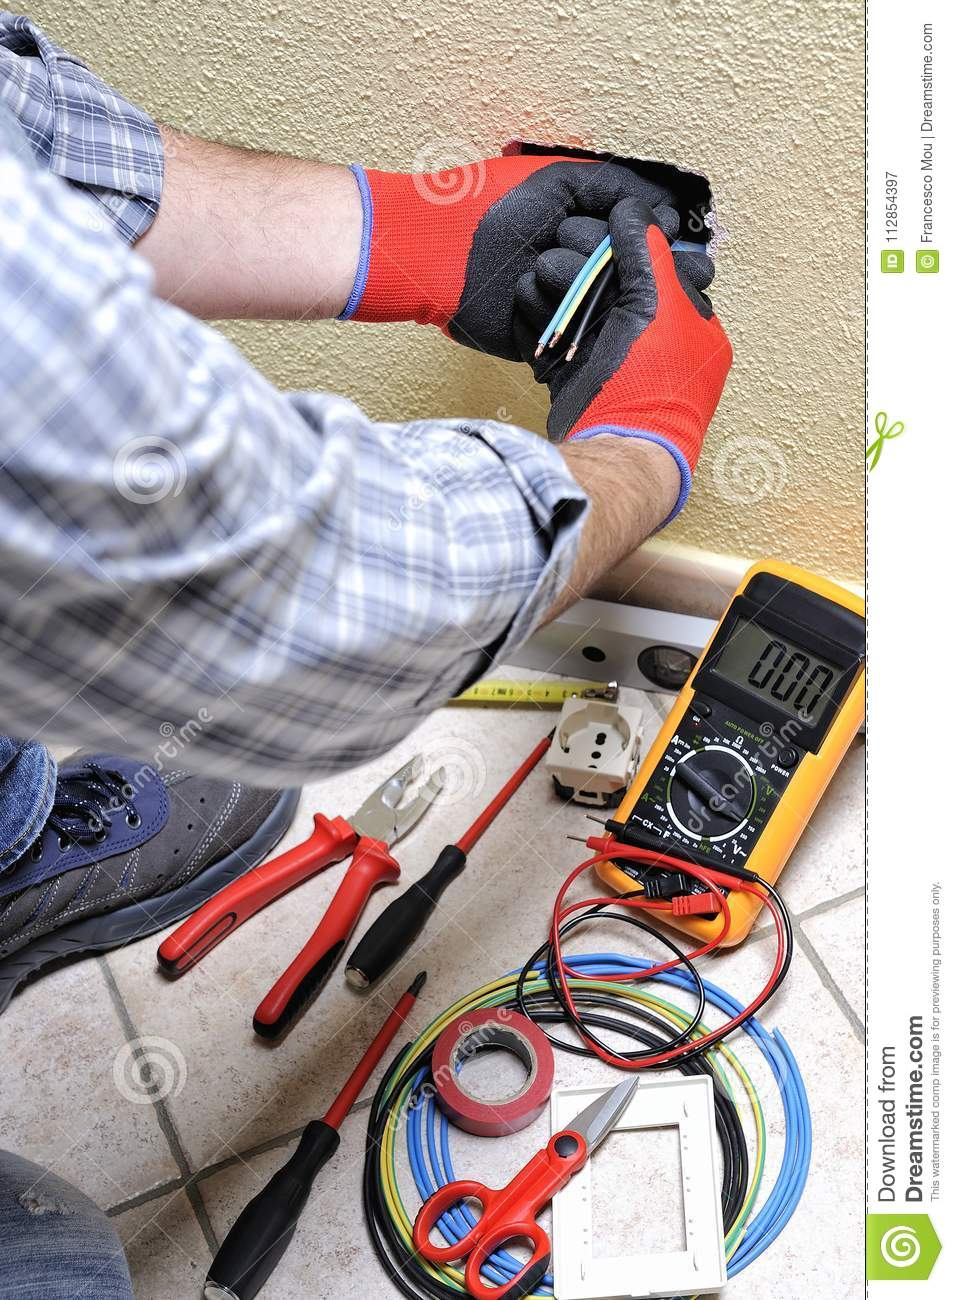 Electrician Technician At Work With Safety Equipment On A